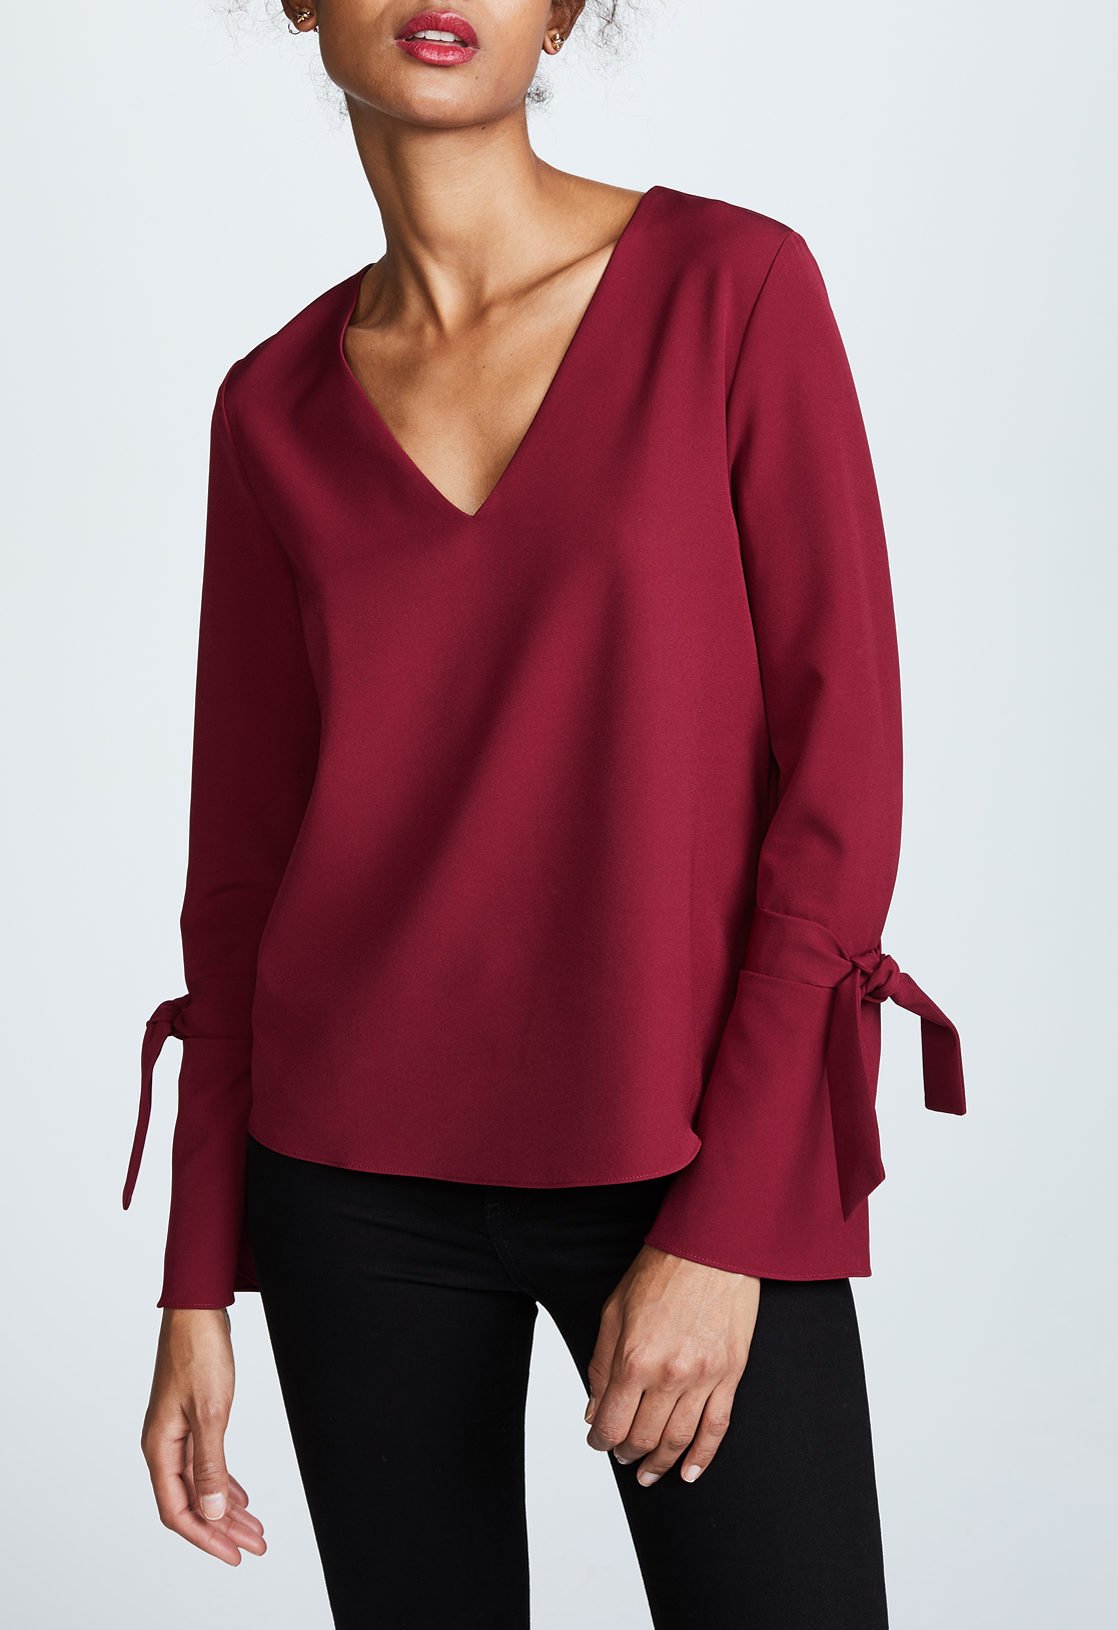 Cooper and Ella top—tops